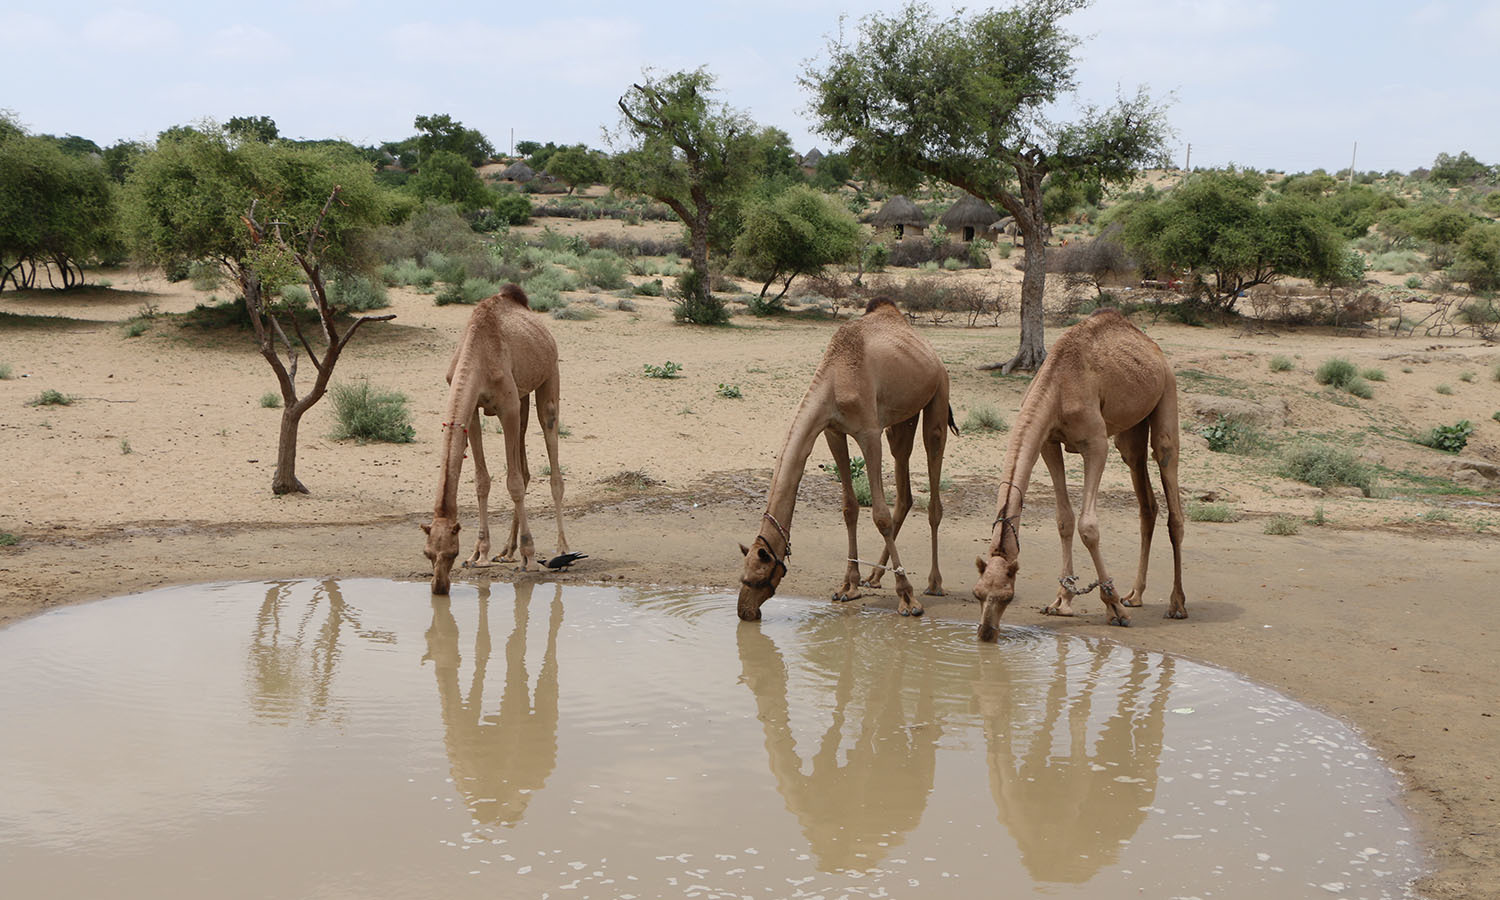 Camels drink water in drought-stricken Thar.—Photo by Hussain Nagri